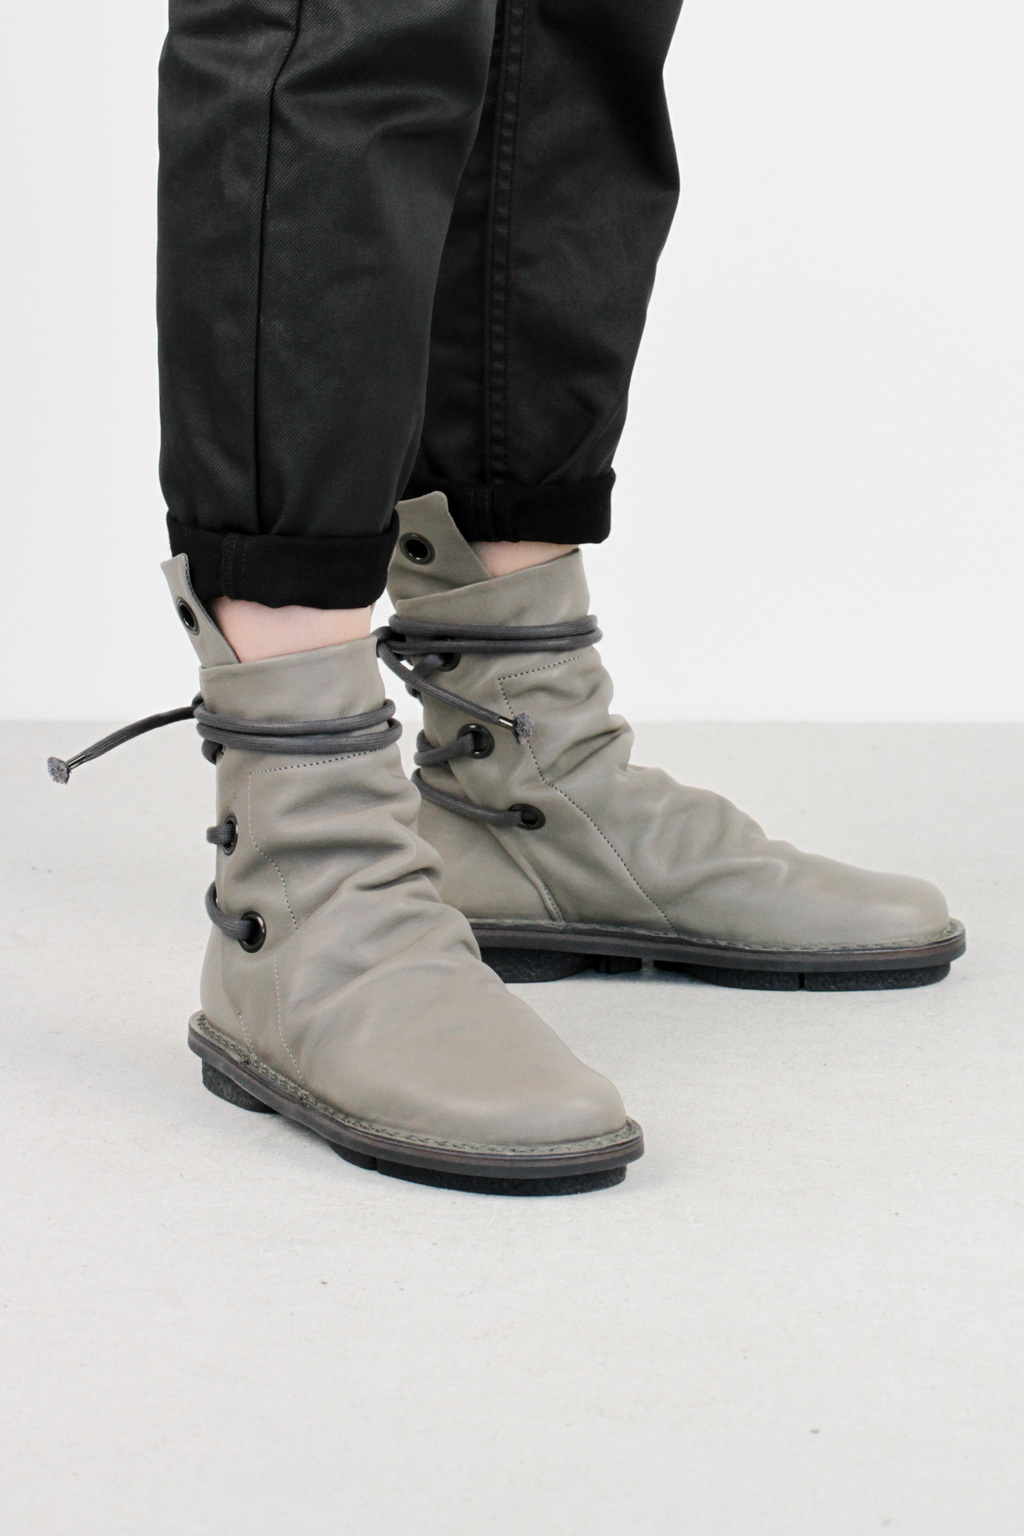 Trippen awning f beton sat leather boots3